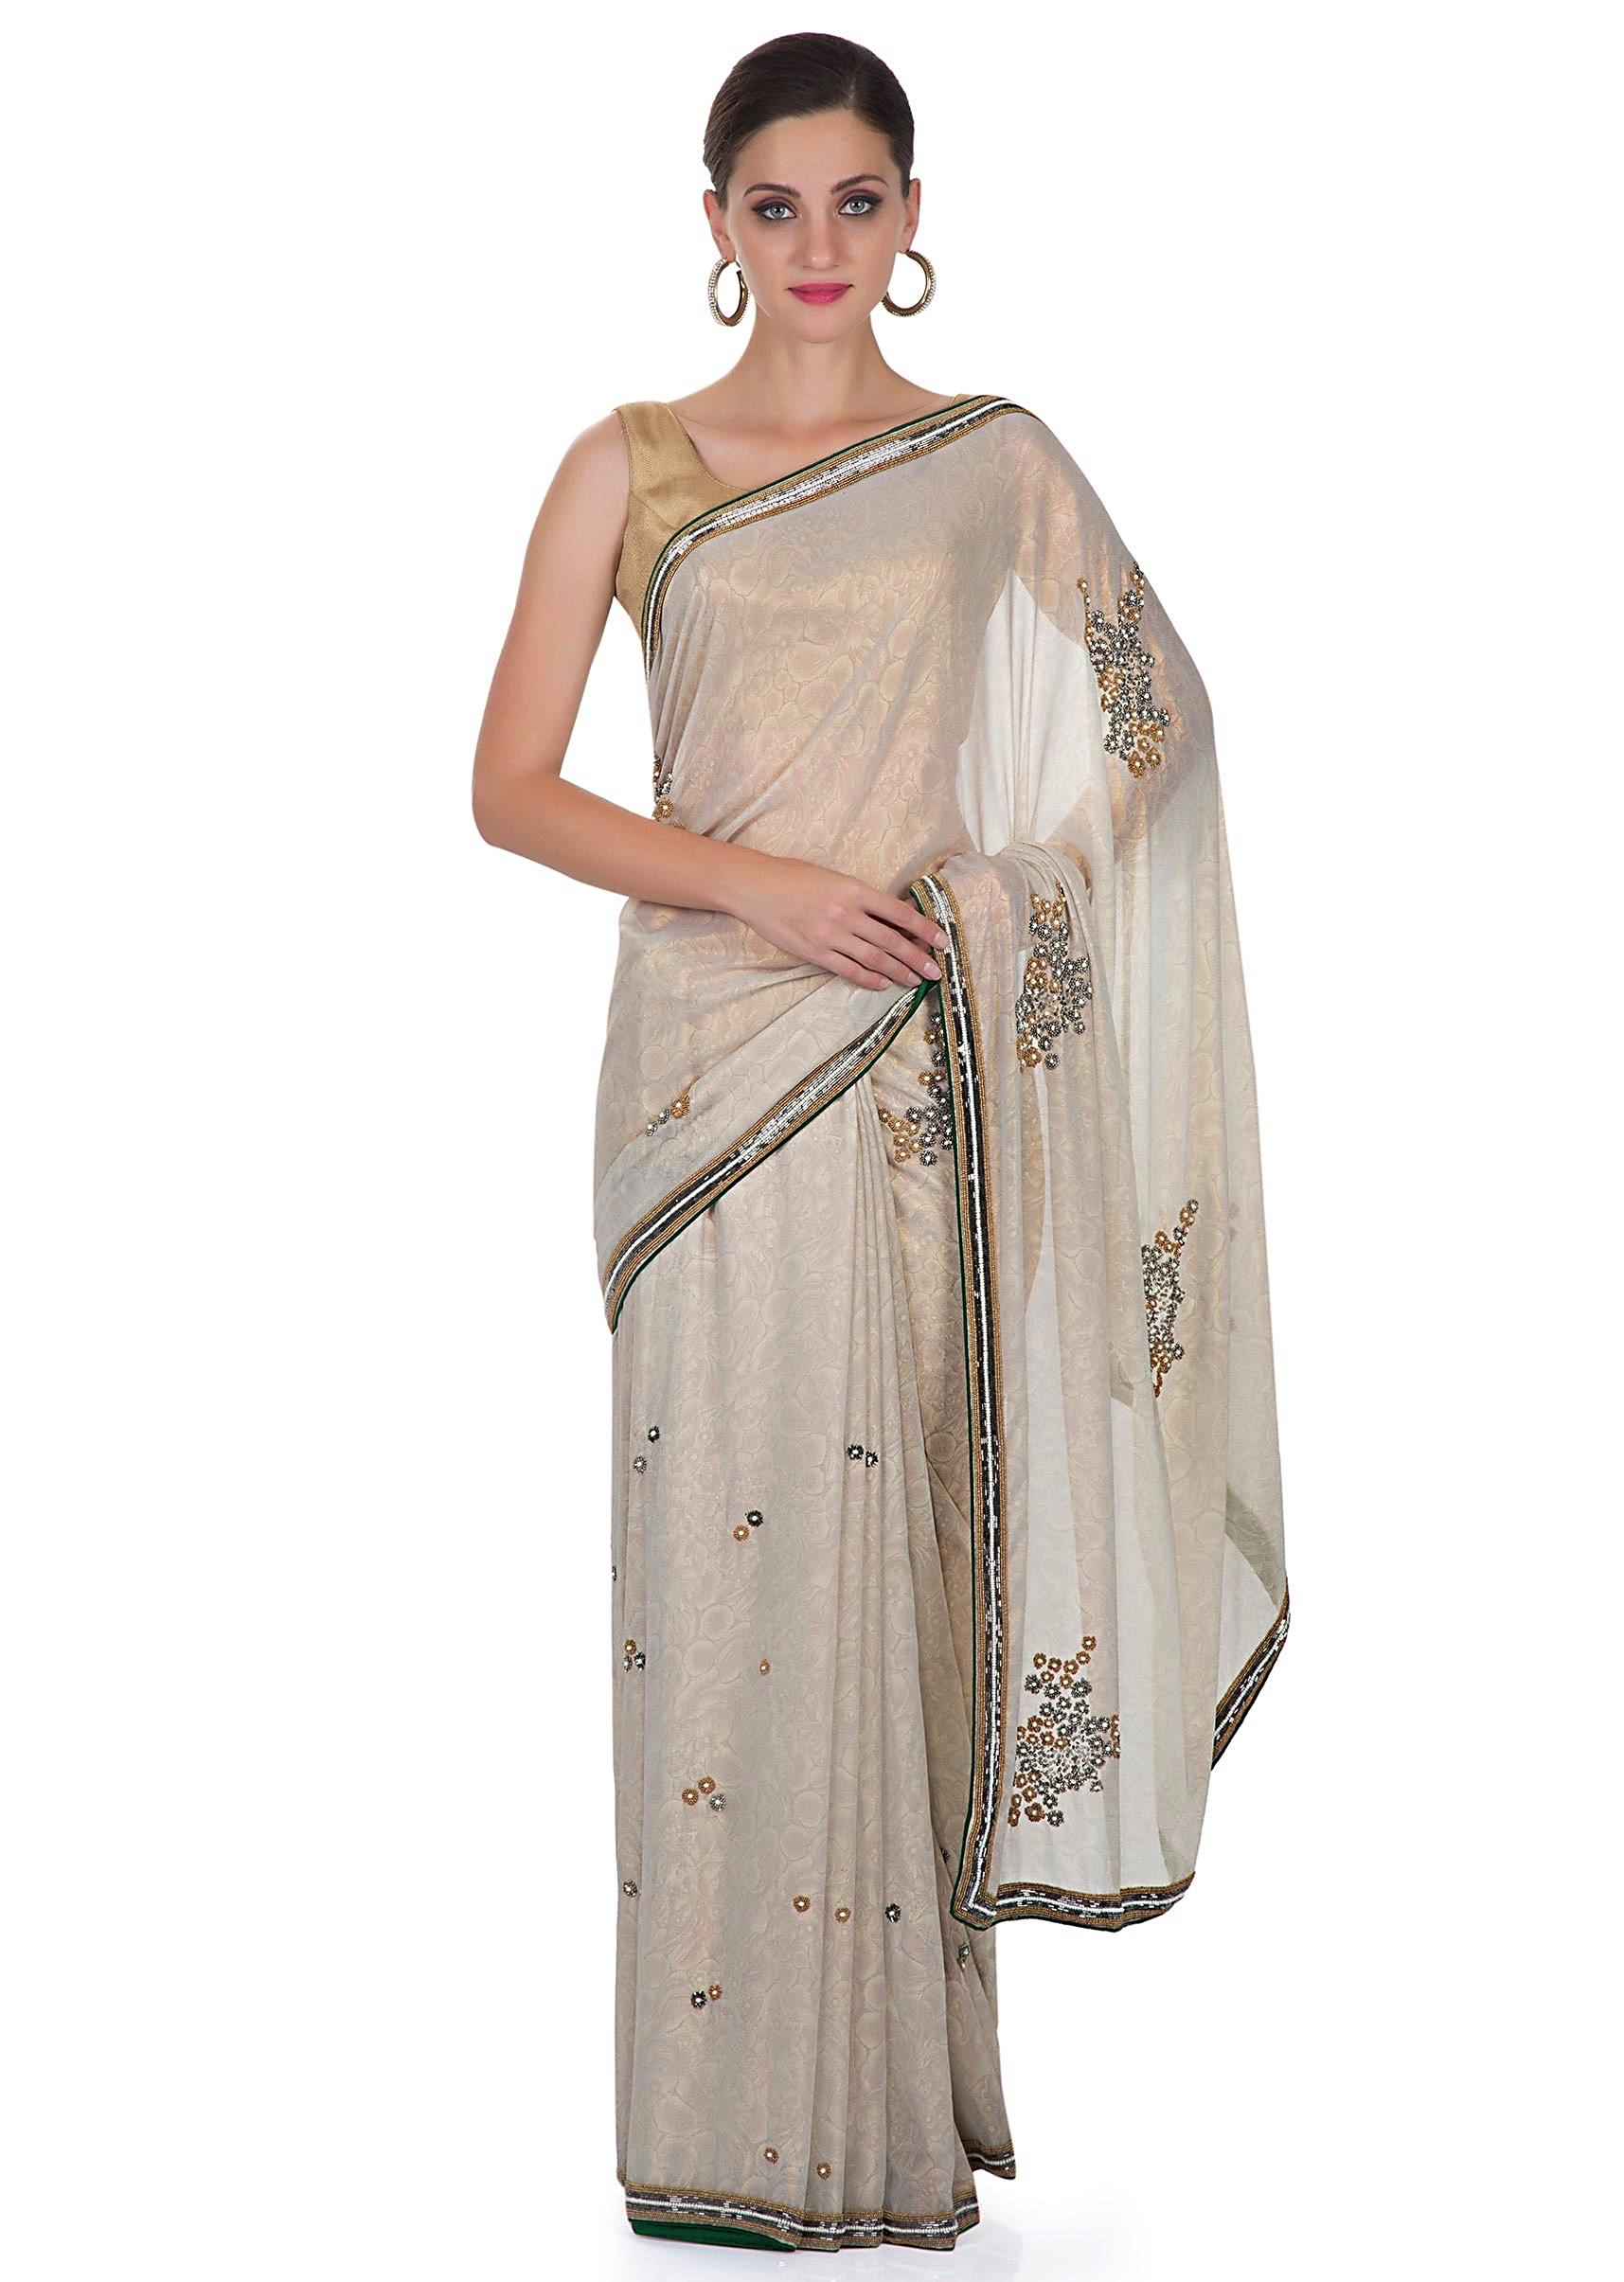 29b32a7fe4 Grey Foil Georgette Saree Featuring Sequins and Beads Only on Kalki More  Detail